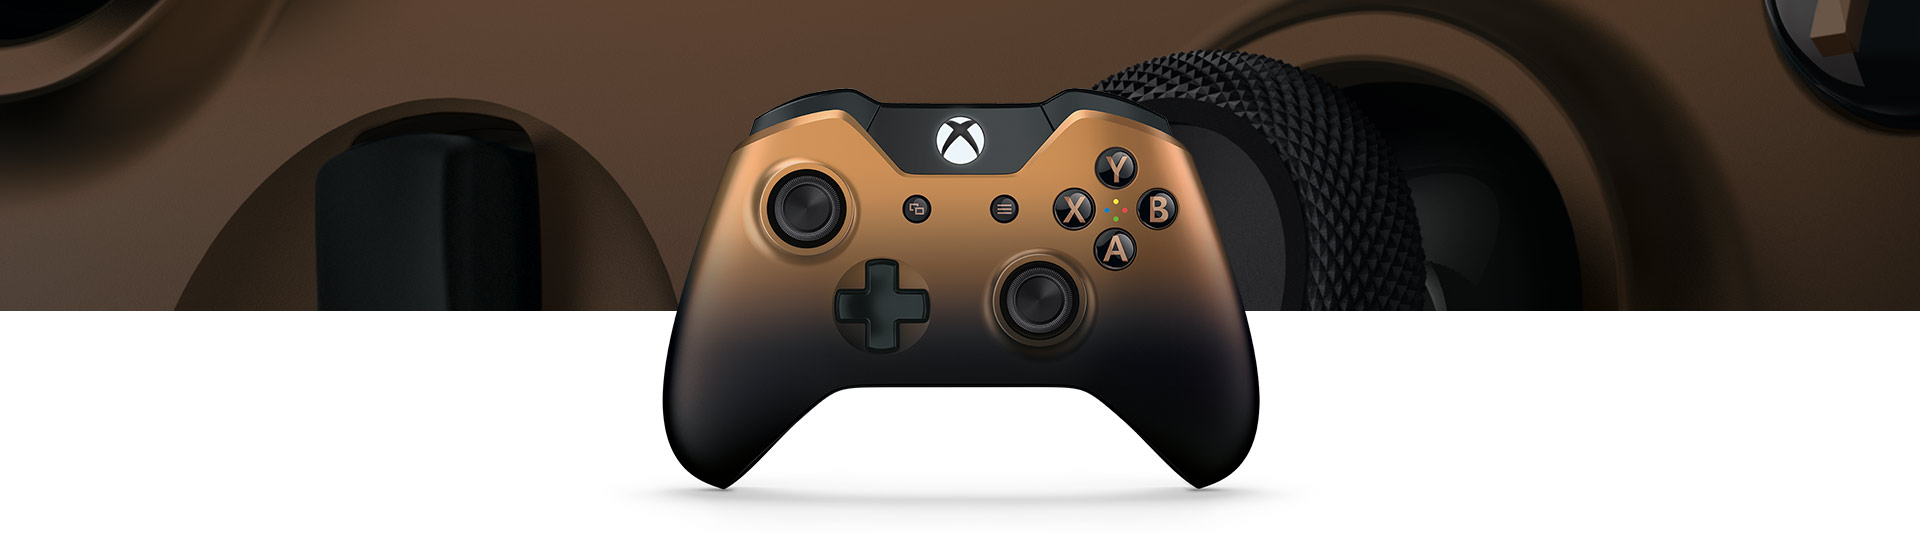 Controller Wireless Copper Shadow per Xbox One in Edizione Speciale